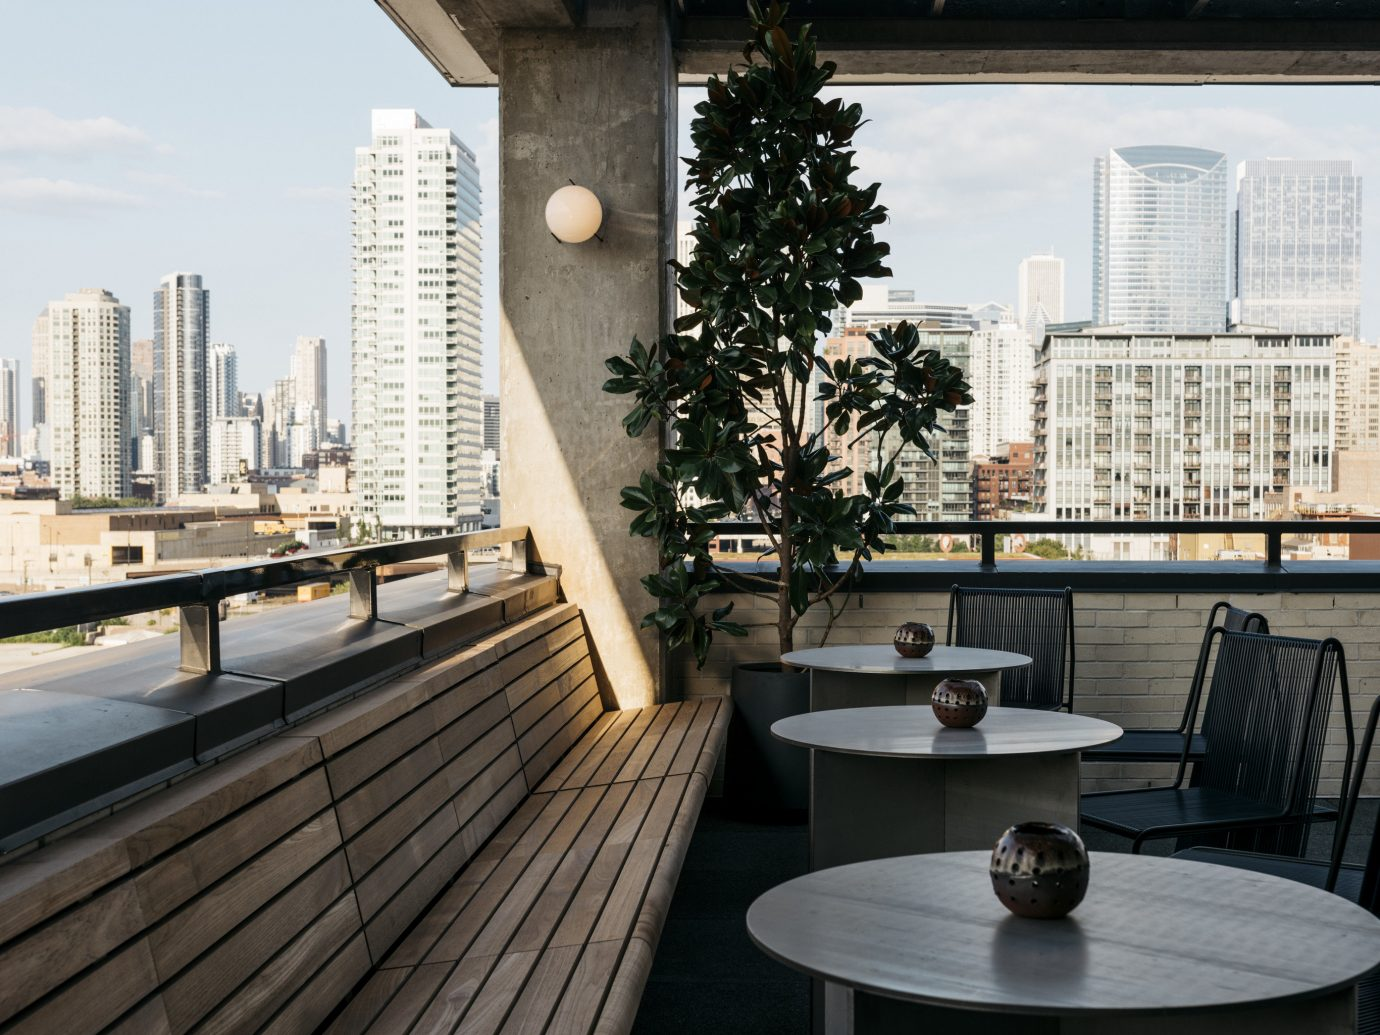 Food + Drink Architecture condominium roof Balcony furniture apartment real estate building window interior design home outdoor structure table Deck penthouse apartment overlooking